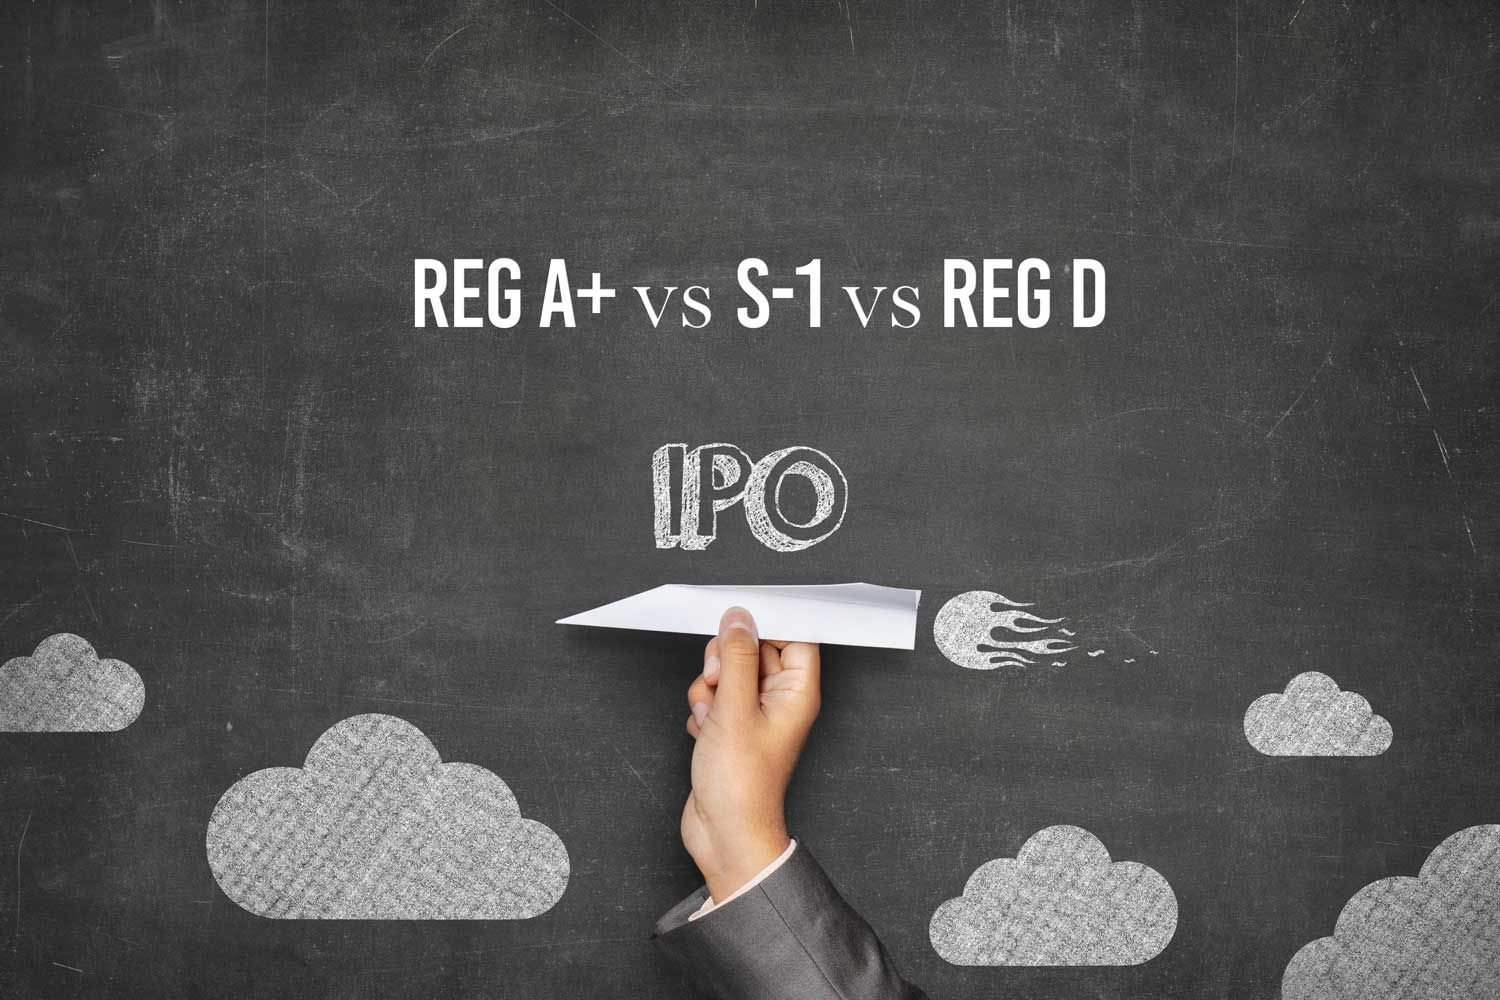 Reg A+ vs S-1 vs Reg D Offerings